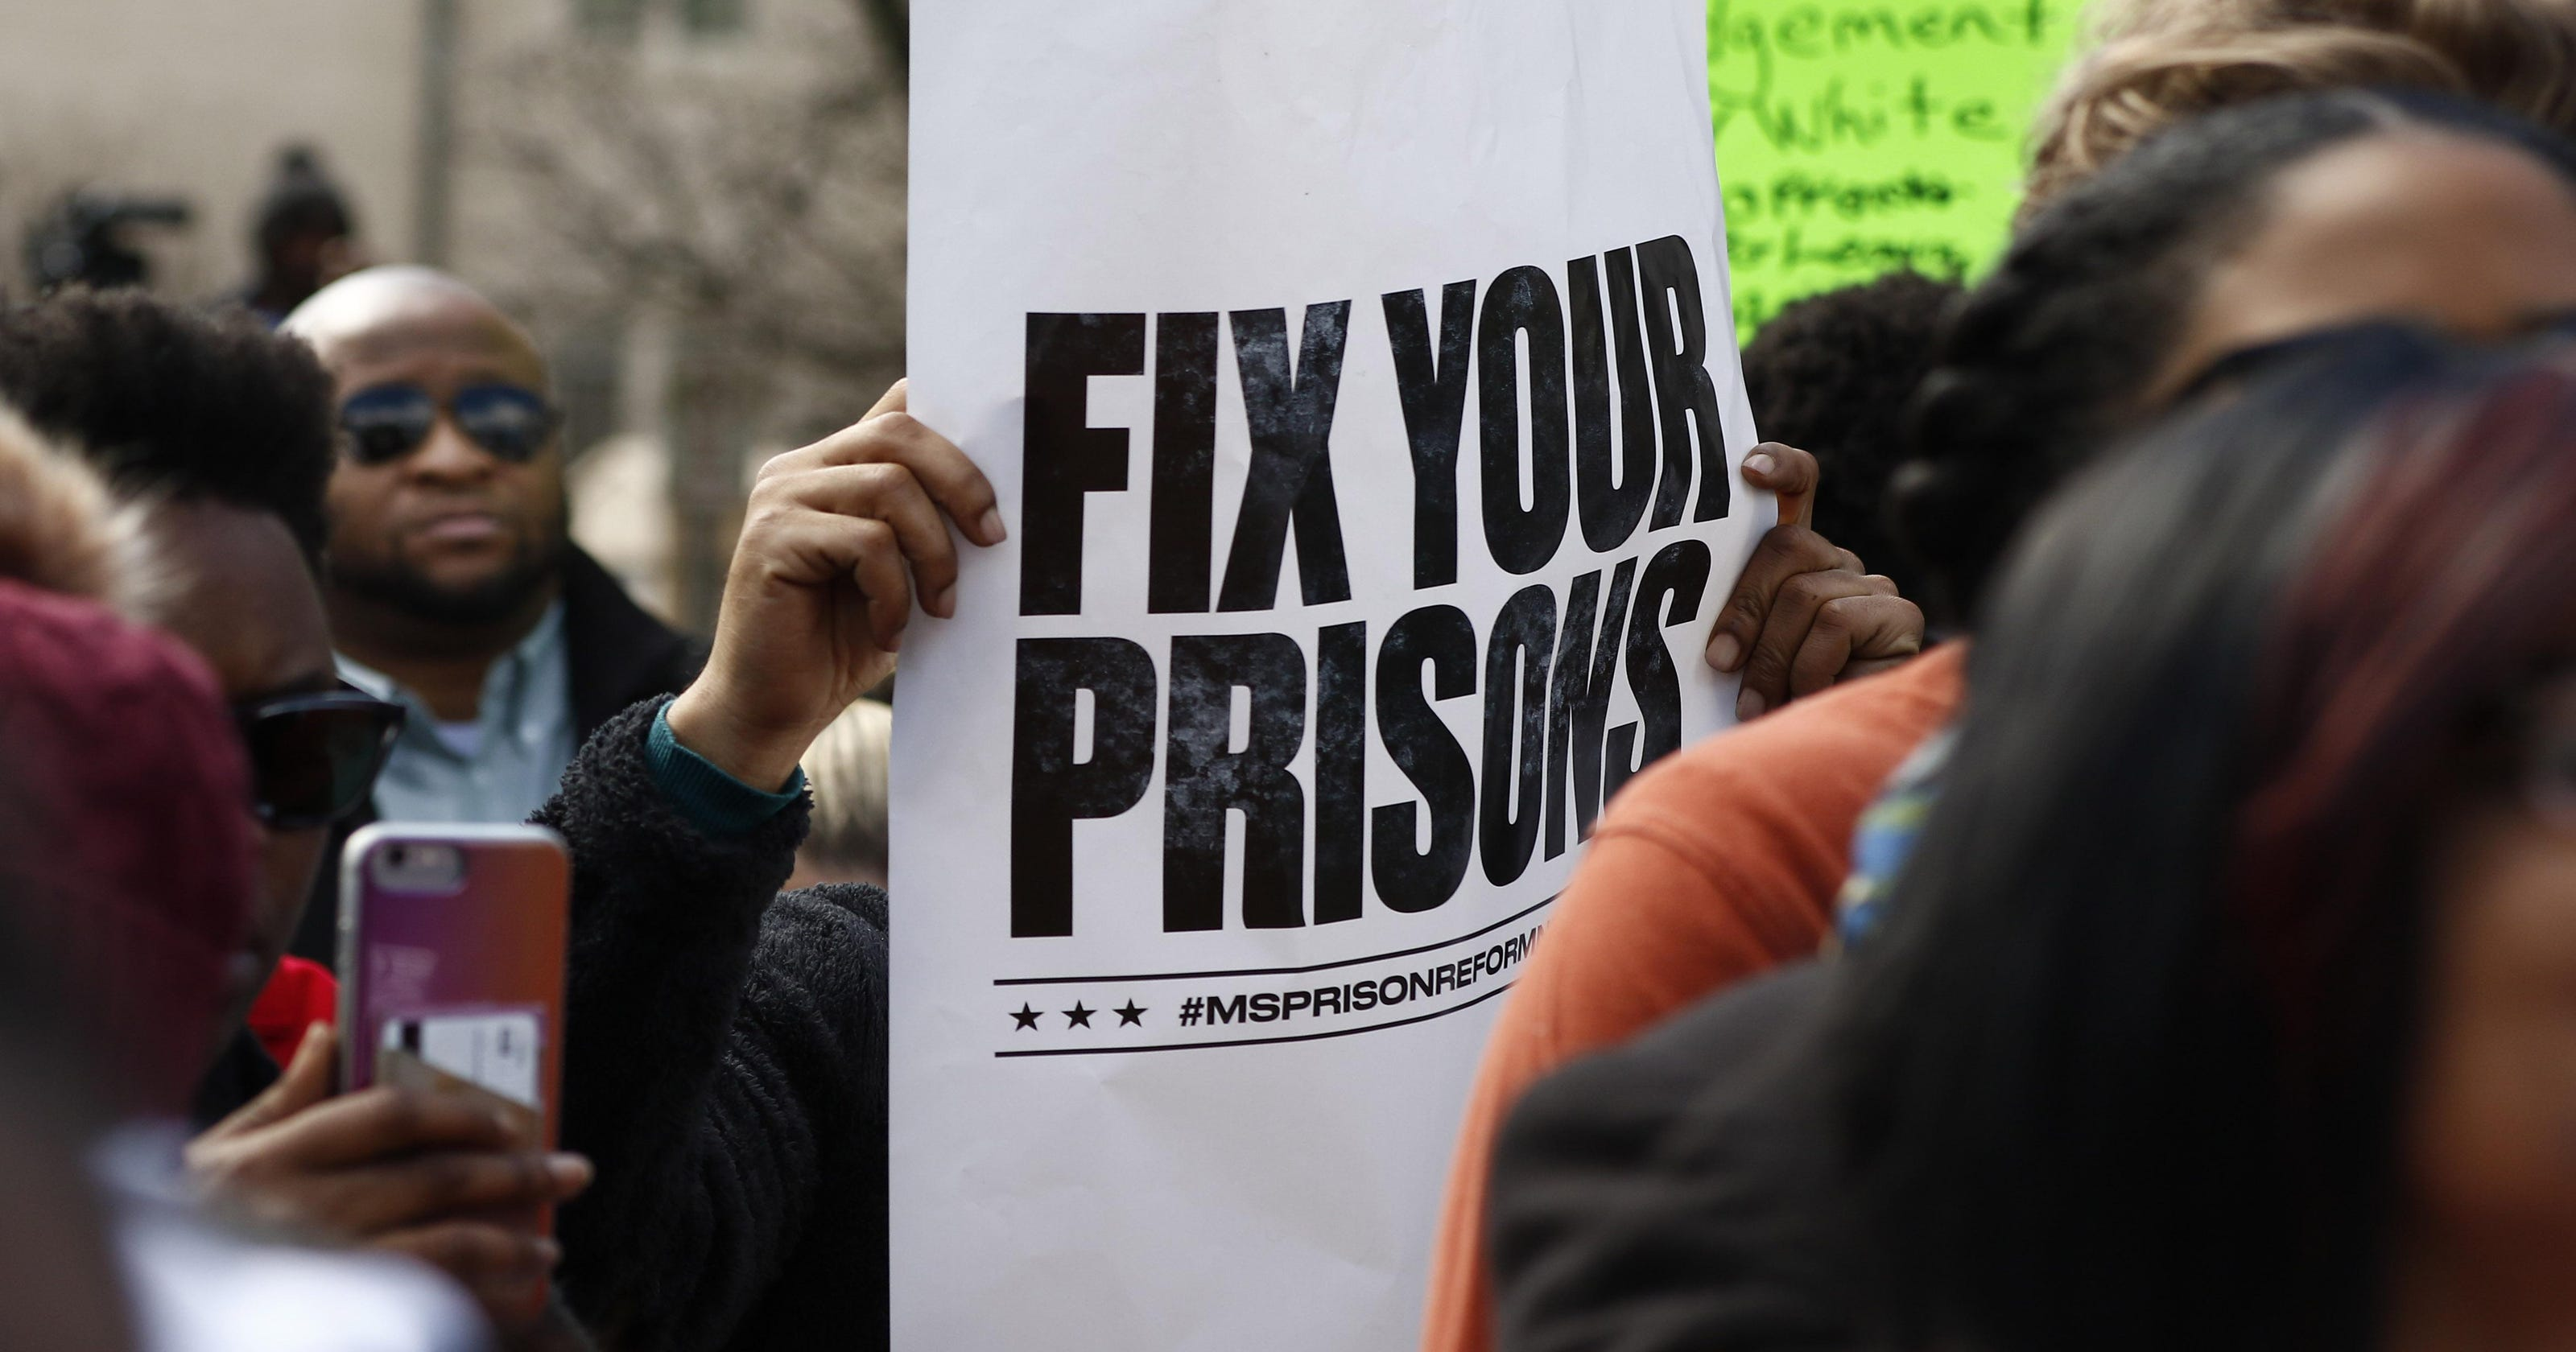 Protest for prisons, skeleton on board, monarch slump: News from around our 50 states